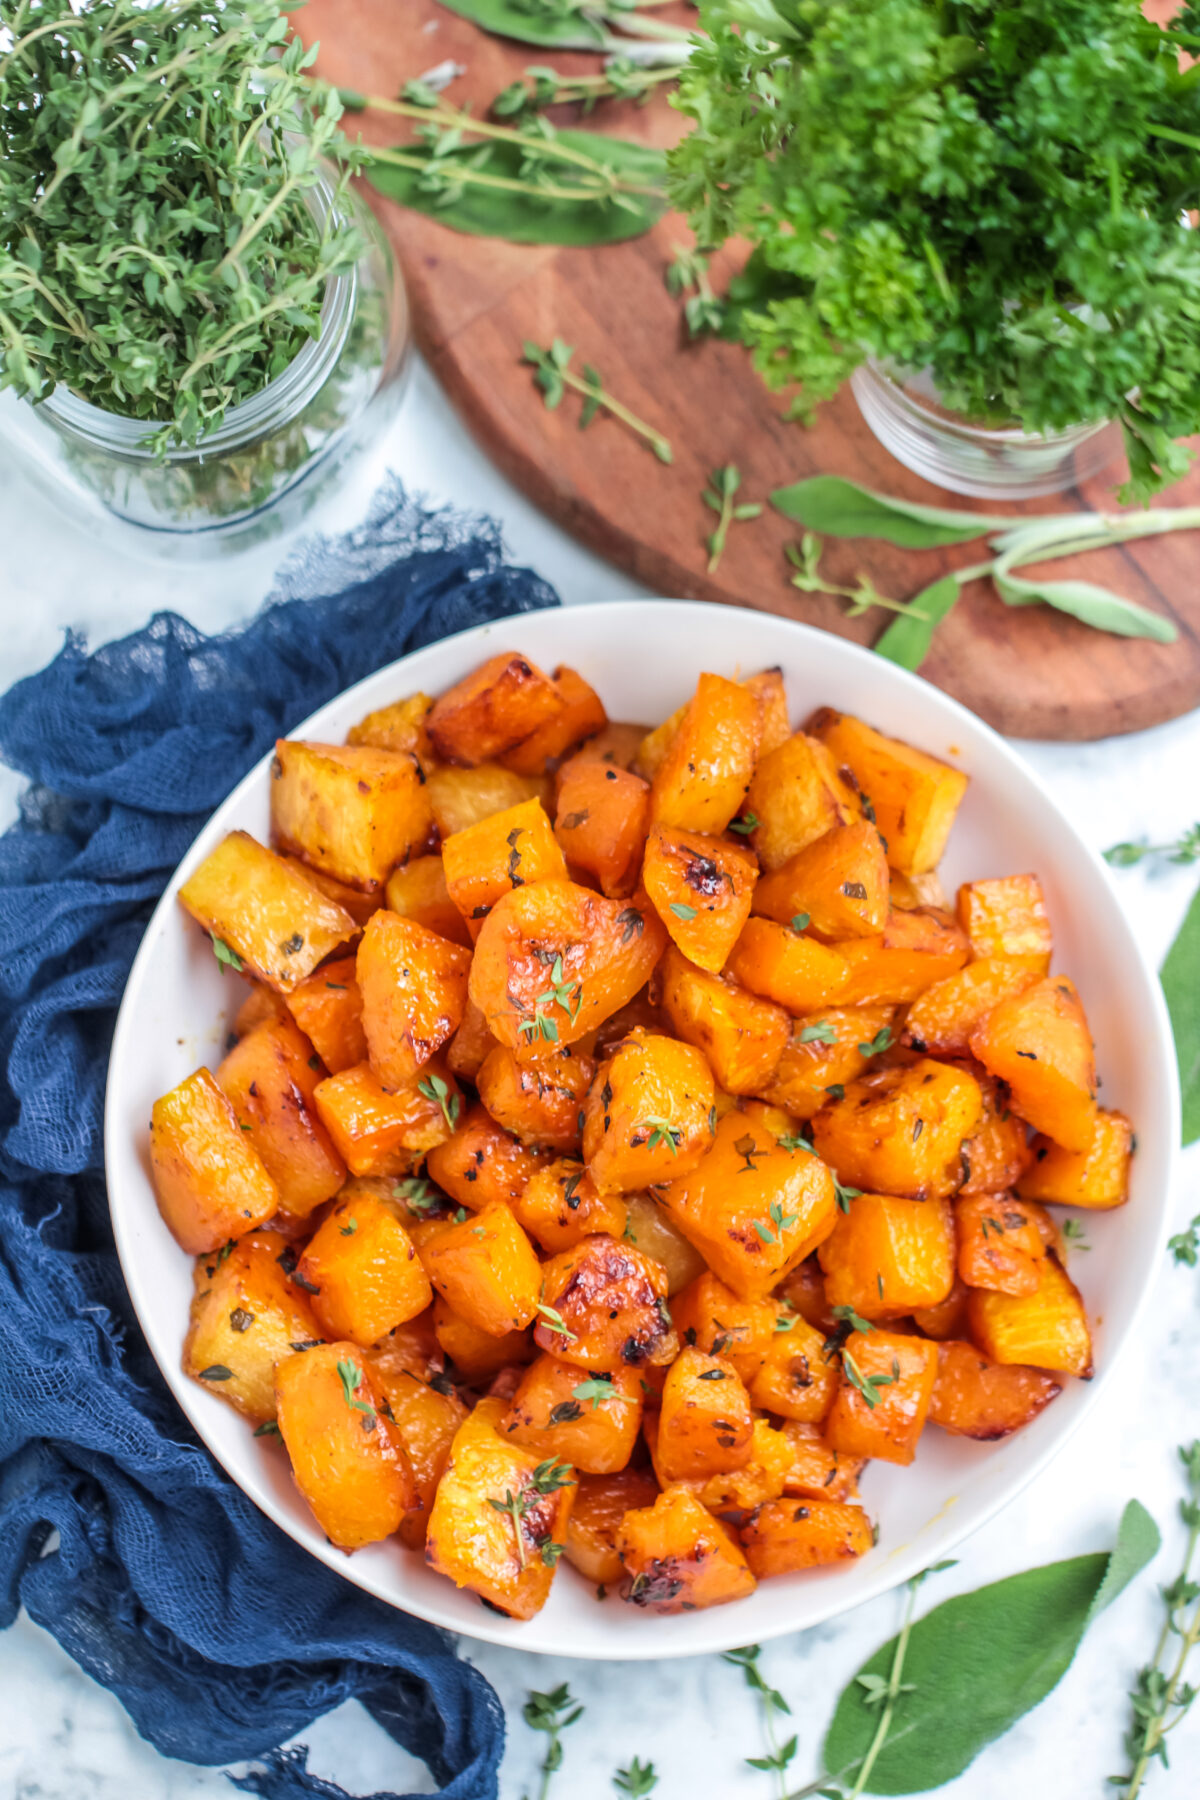 Roasted butternut squash with brown sugar and herbs is a tasty side dish for any fall menu. You will love this perfectly caramelized squash!